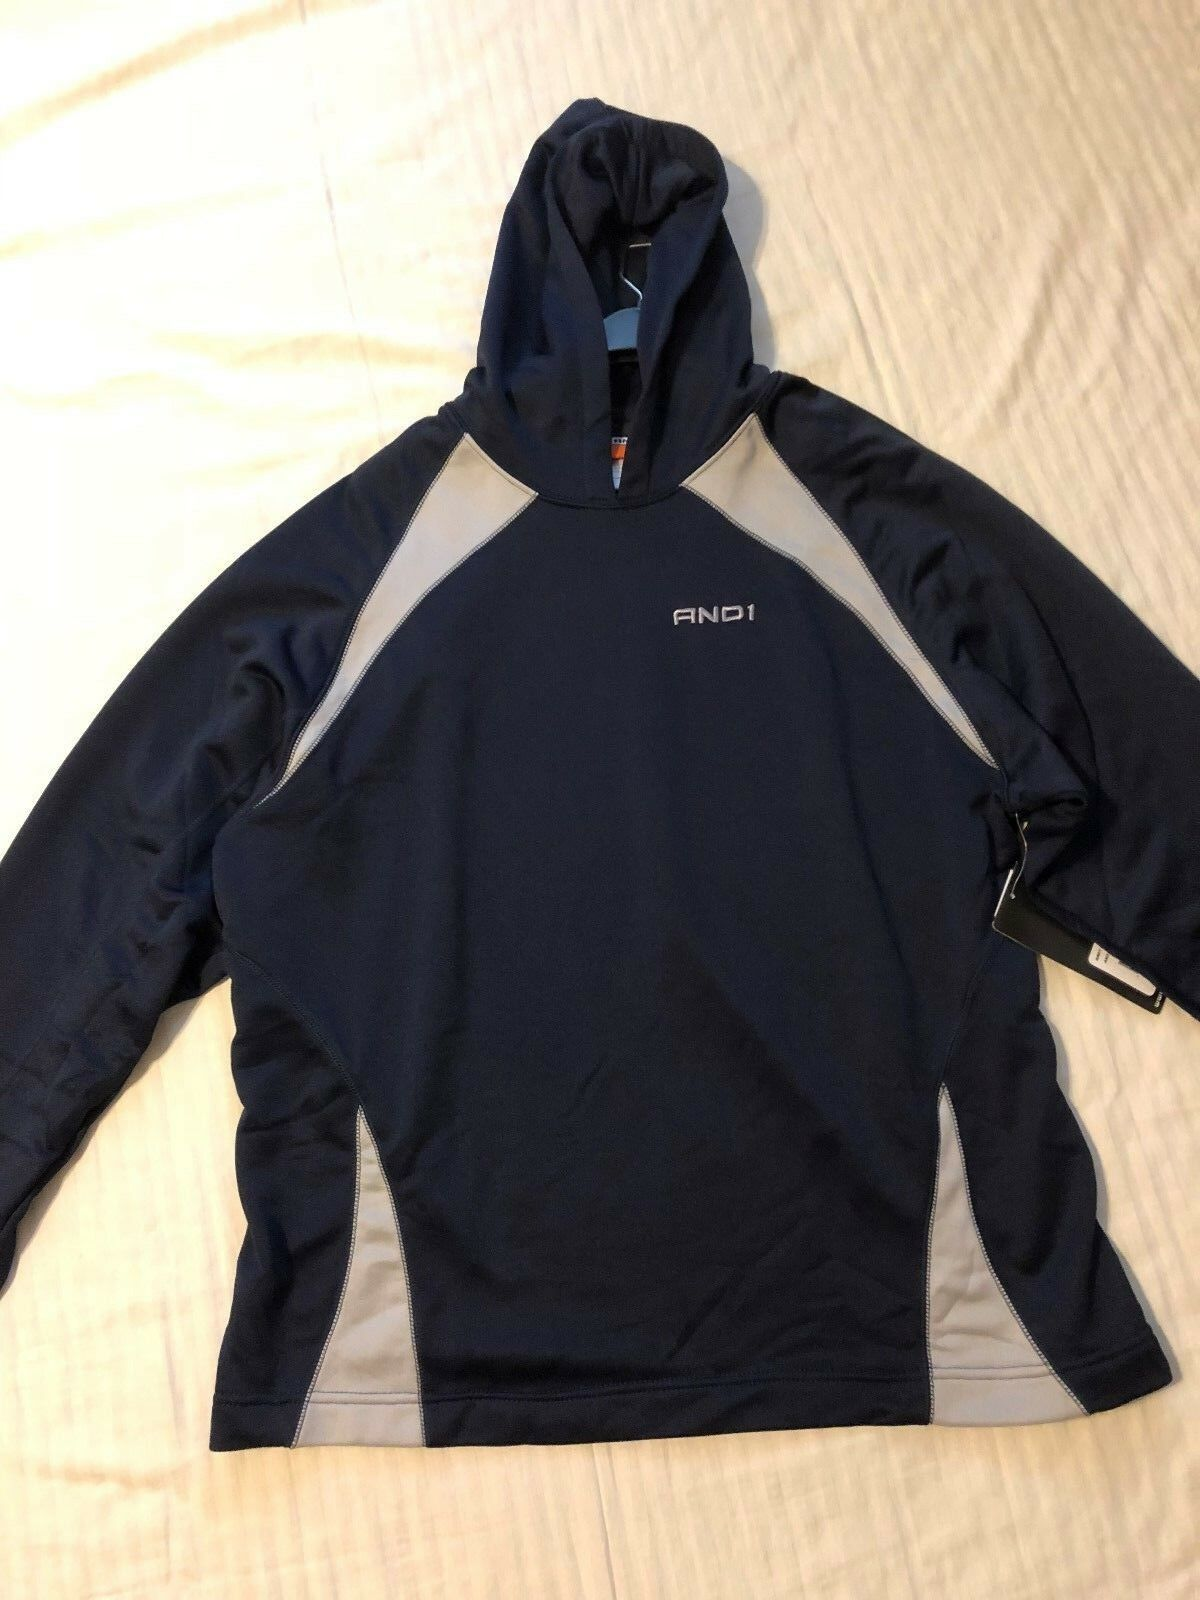 AND 1: Men's Long Sleeve Basketball Hoodie: Navy w/Gray Trim, L & XL